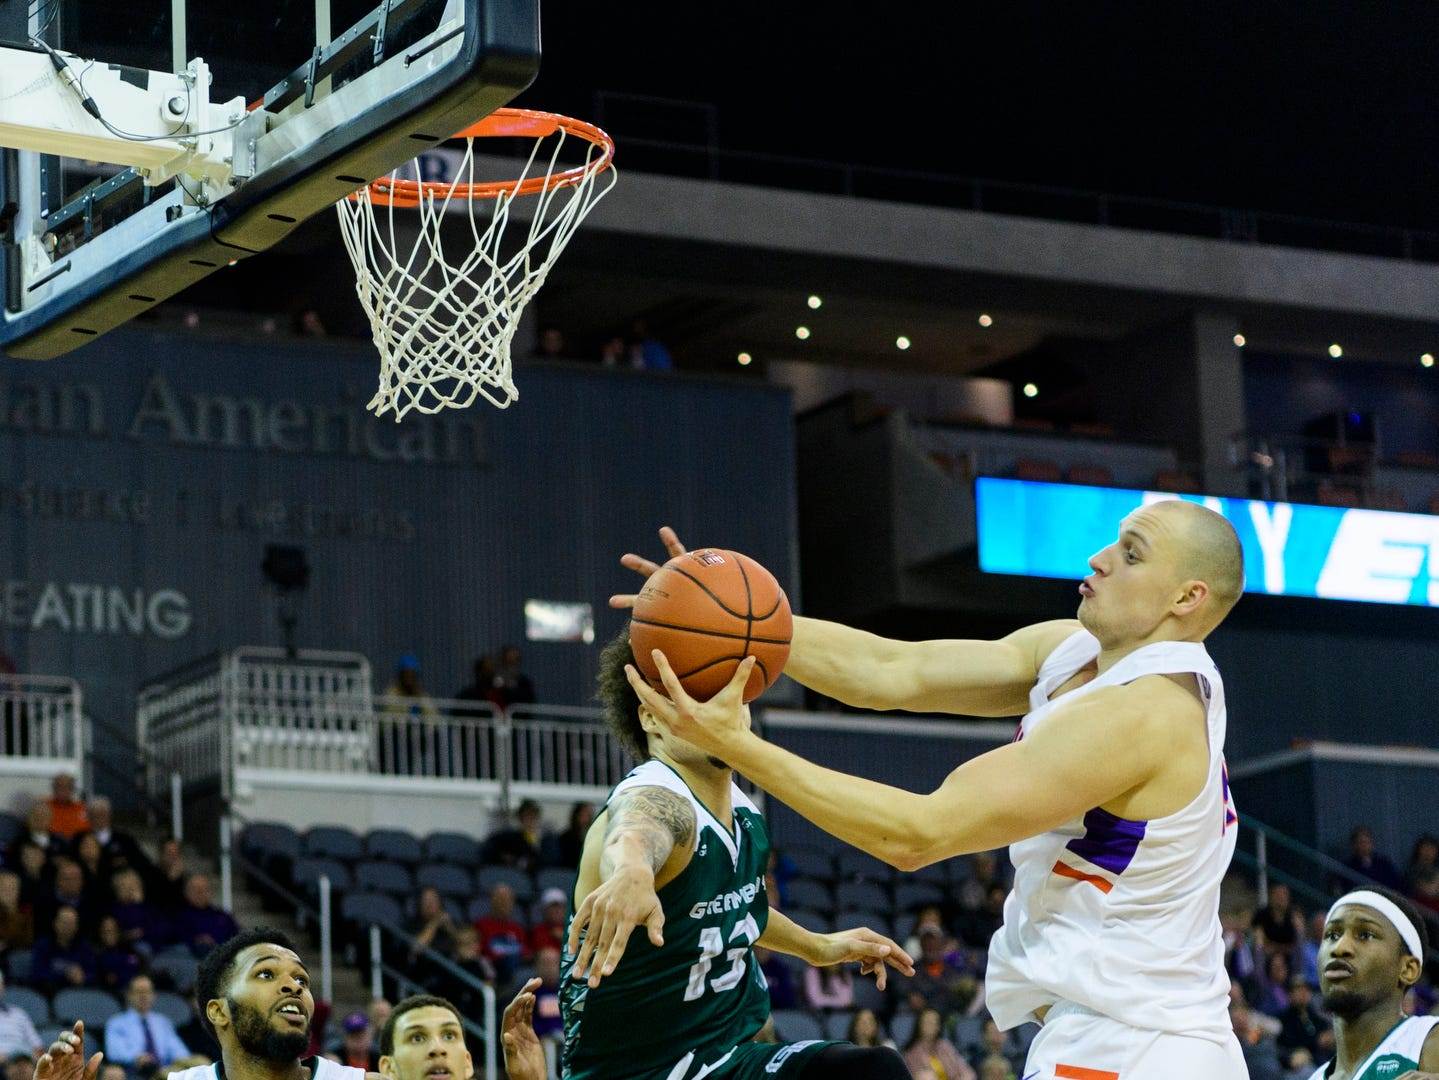 University of Evansville's Dainius Charkevicius (14) recovers the ball after Green Bay's Trevian Bell (13) swatted it away from the net during the second half at Ford Center in Evansville, Ind., Saturday, Dec. 22, 2018. The Purple Aces defeated the Phoenix 80-75 in their last non-conference game of the season.